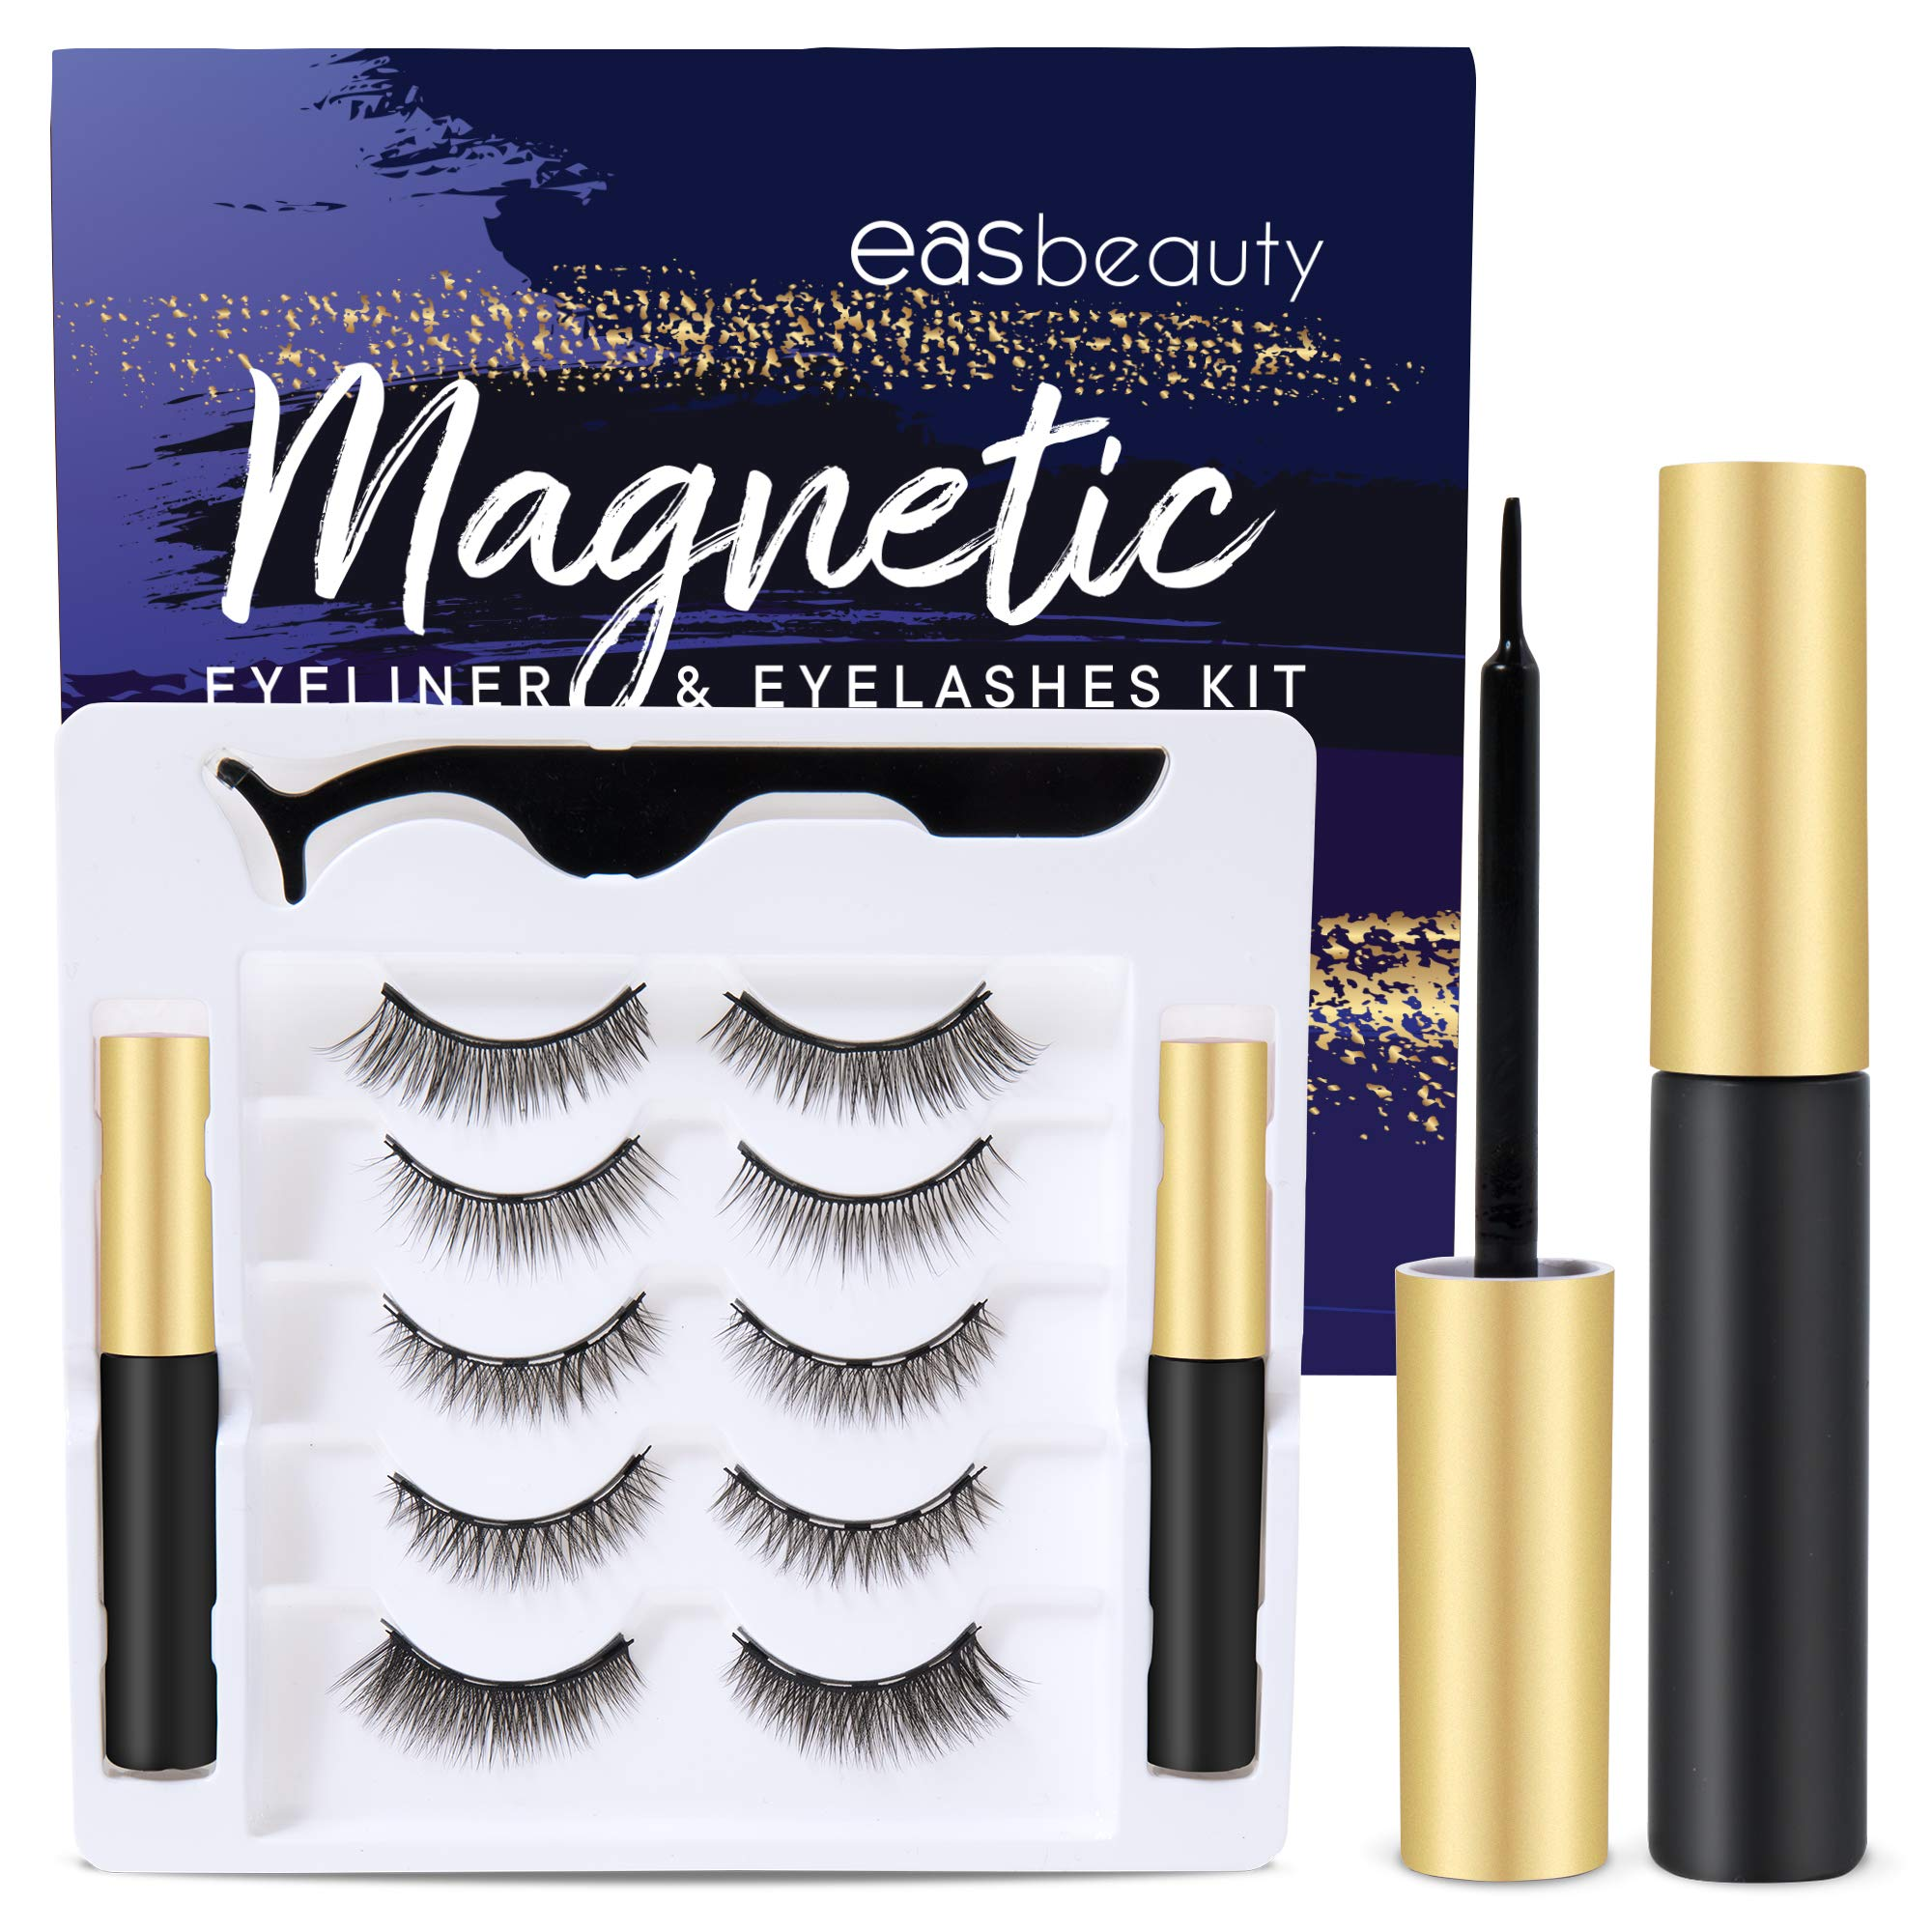 5 Pairs Reusable Magnetic Lashes and Double Eyeliner Kit, Best Magnetic Eyeliner for Magnetic lashes Kit, Comes With 2 Tubes of Magnetic Eyeliner-Easy to Use